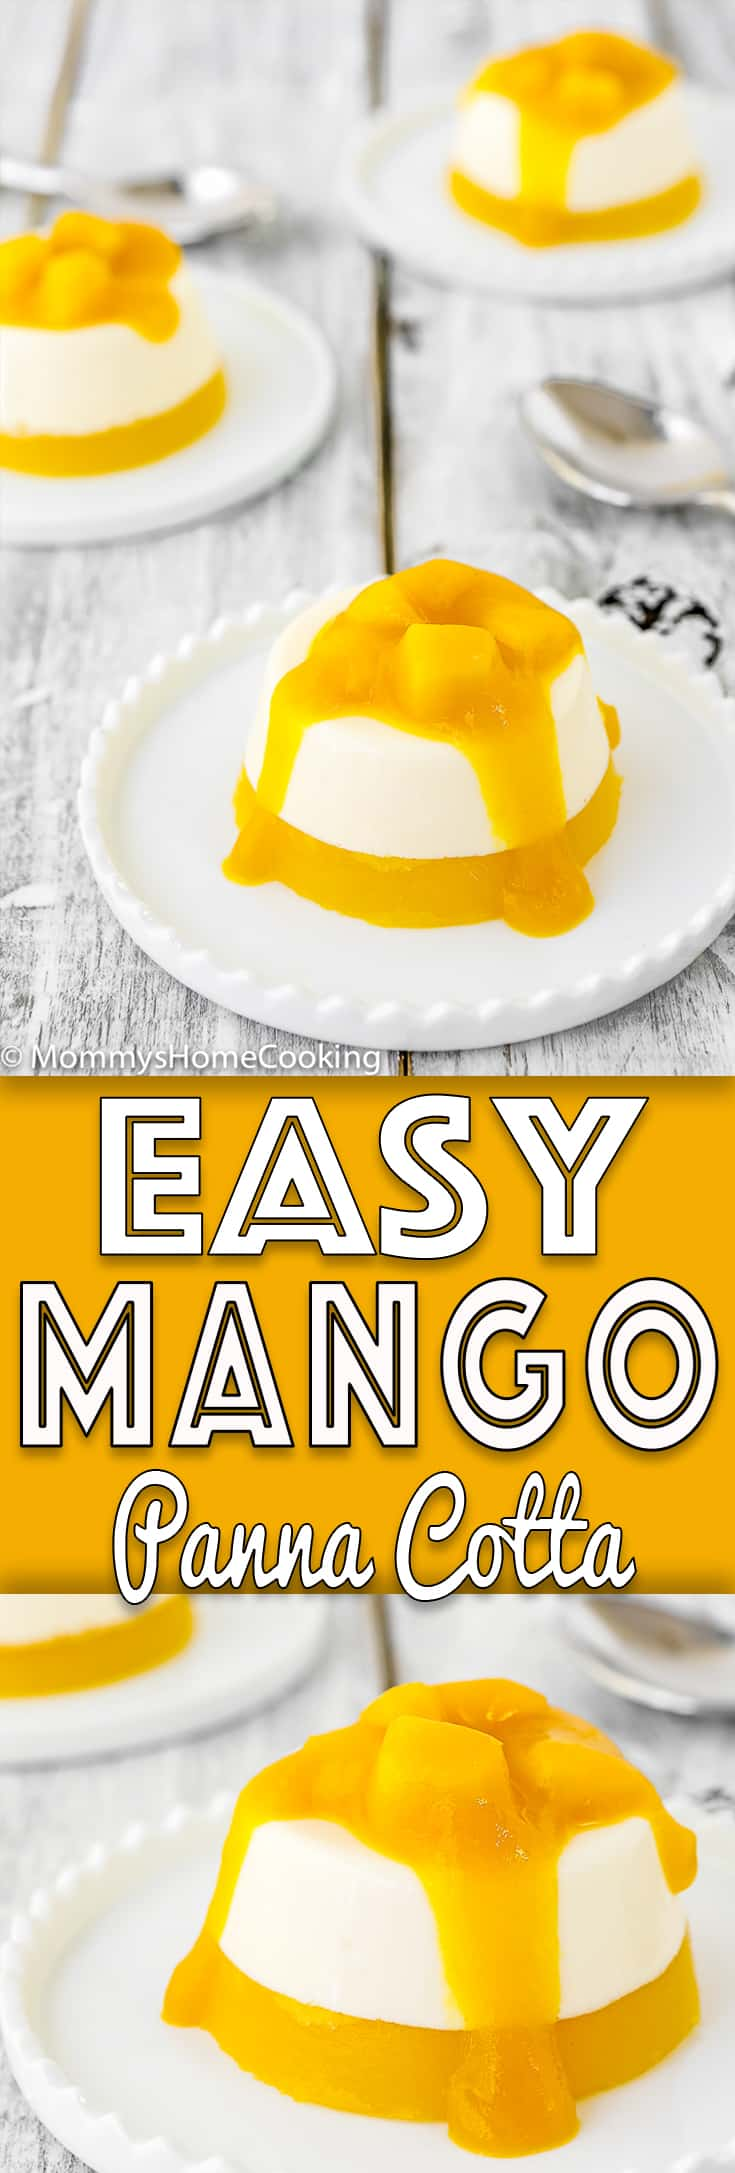 This Easy Mango Panna Cotta recipe is rich, smooth and velvety!! It's super easy to make and can be prepared in advance. Truly magnificent. https://mommyshomecooking.com